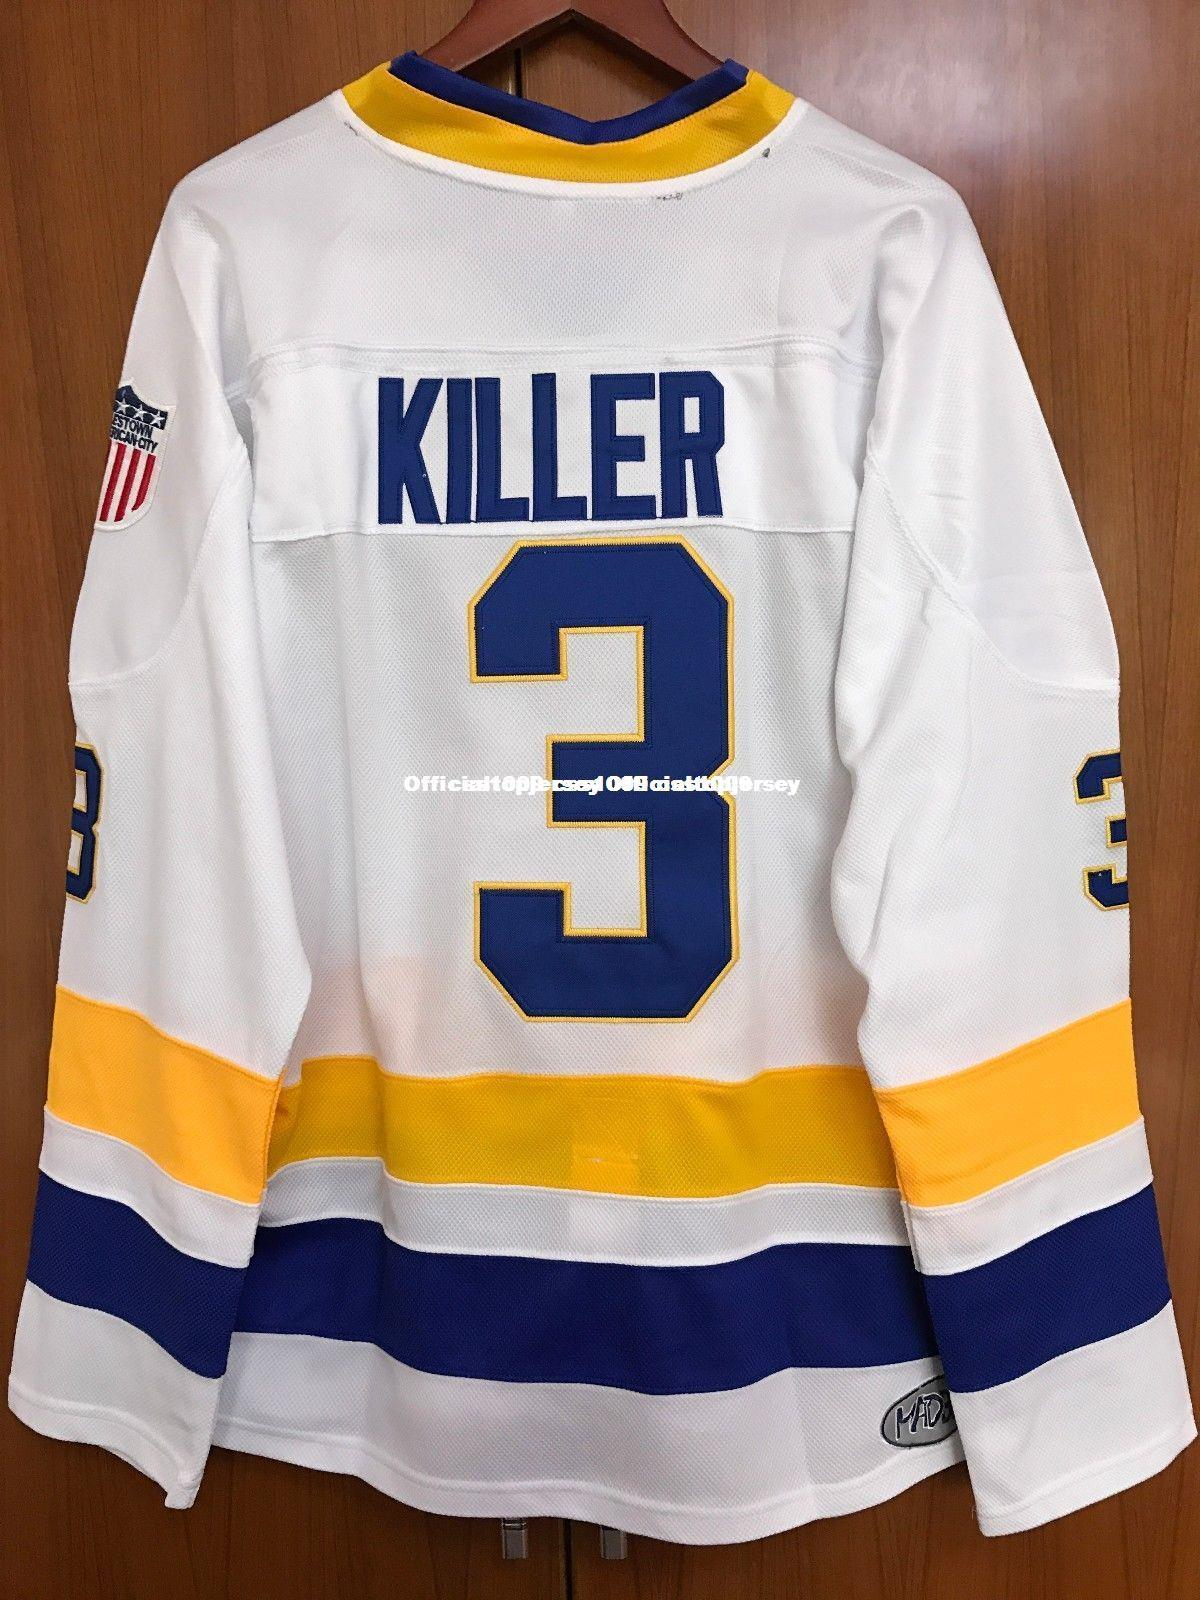 2019 Cheap Custom Dave Killer Carlson  3 Ice Hockey Jersey Charlestown  Chiefs White Stitched Customize Any Number Name MEN WOMEN YOUTH GOALIE CUT  From ... 1ea5d639752